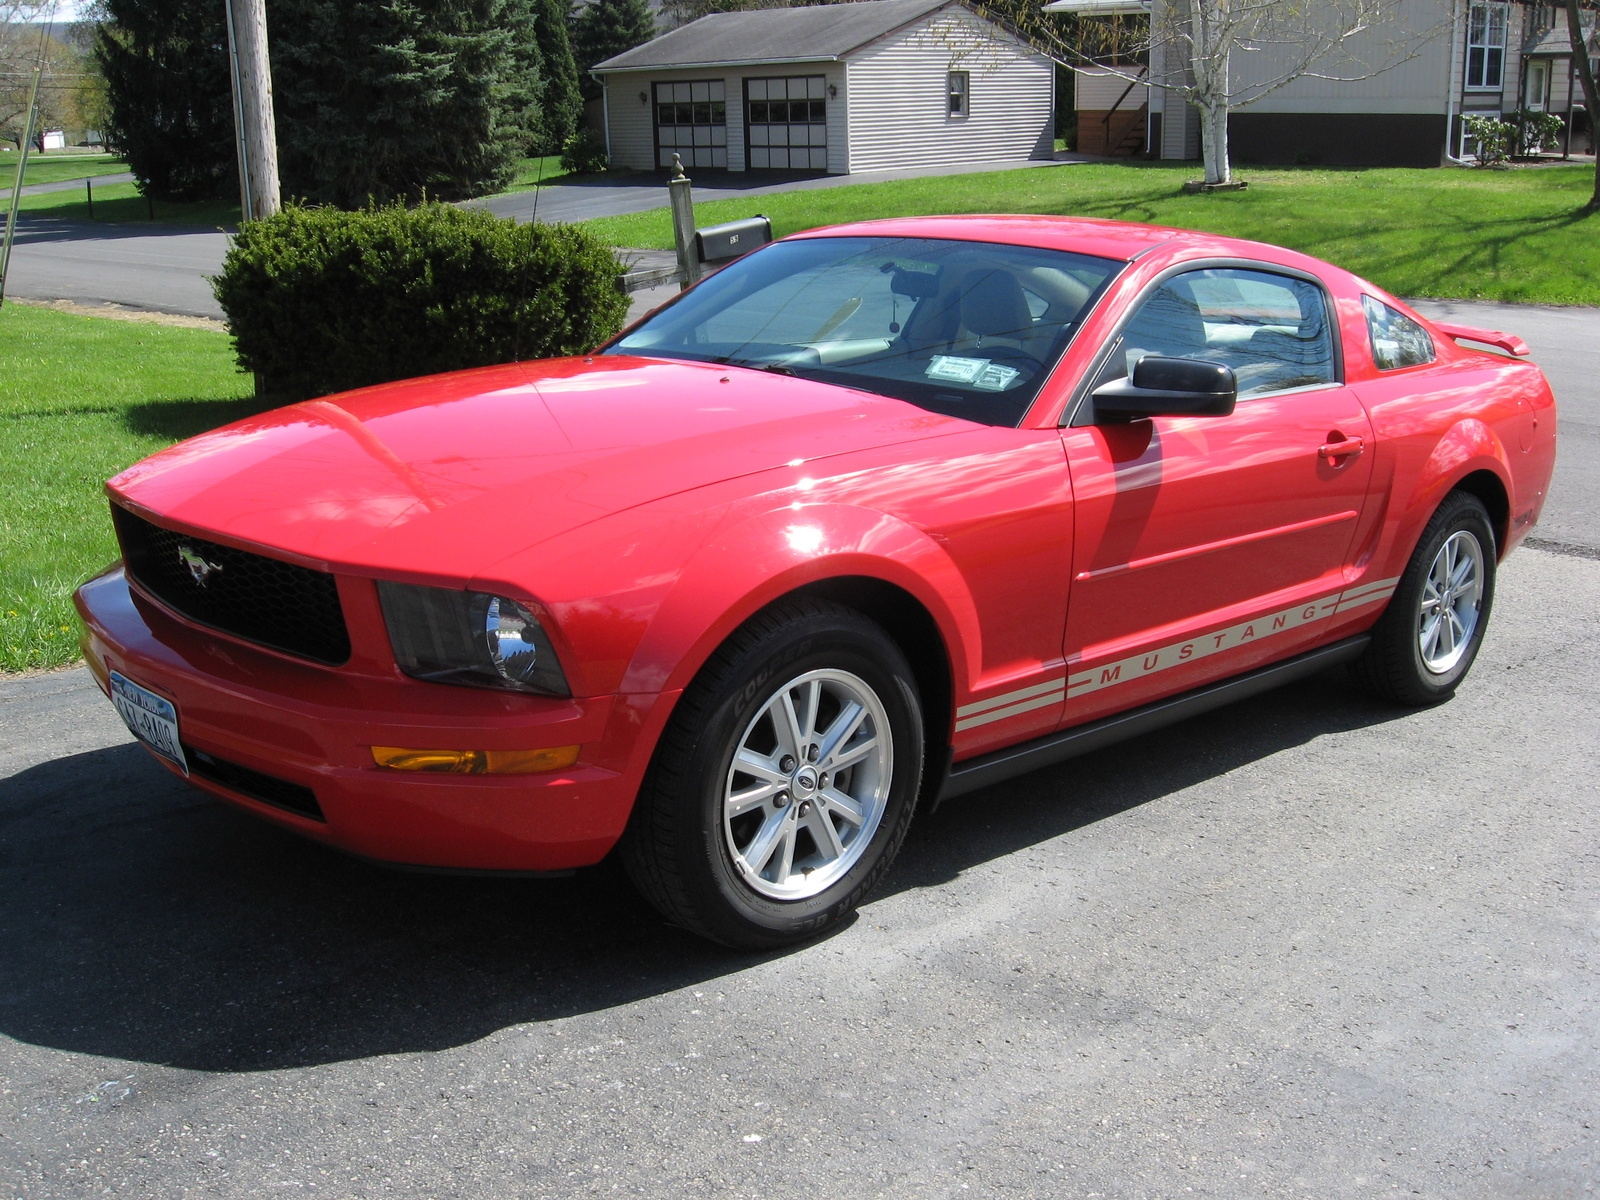 2006 Ford Mustang - Pictures